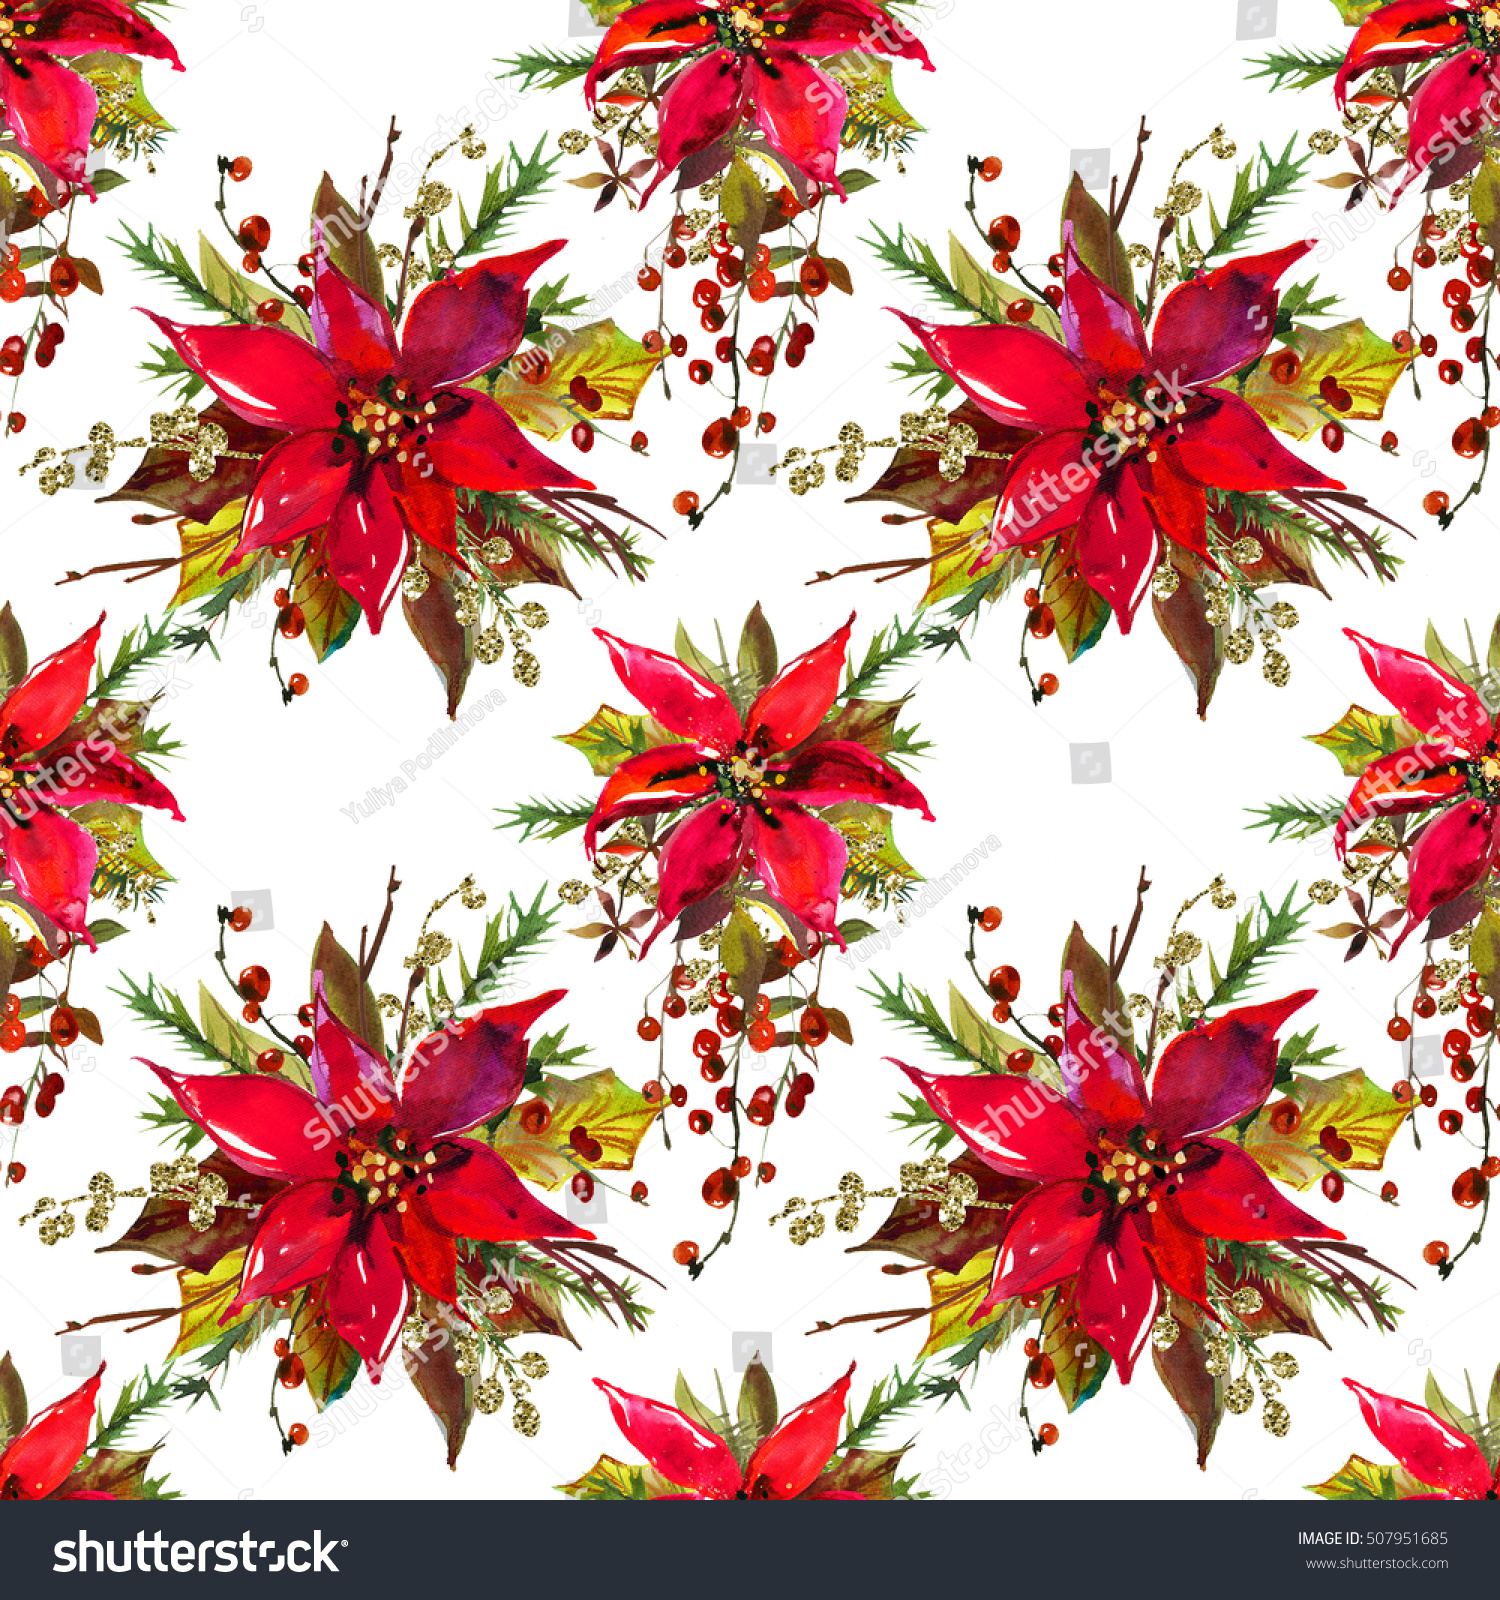 Christmas watercolor floral bouquet pretty flower stock illustration christmas watercolor floral bouquet pretty flower seamless pattern paper background template isolated on white izmirmasajfo